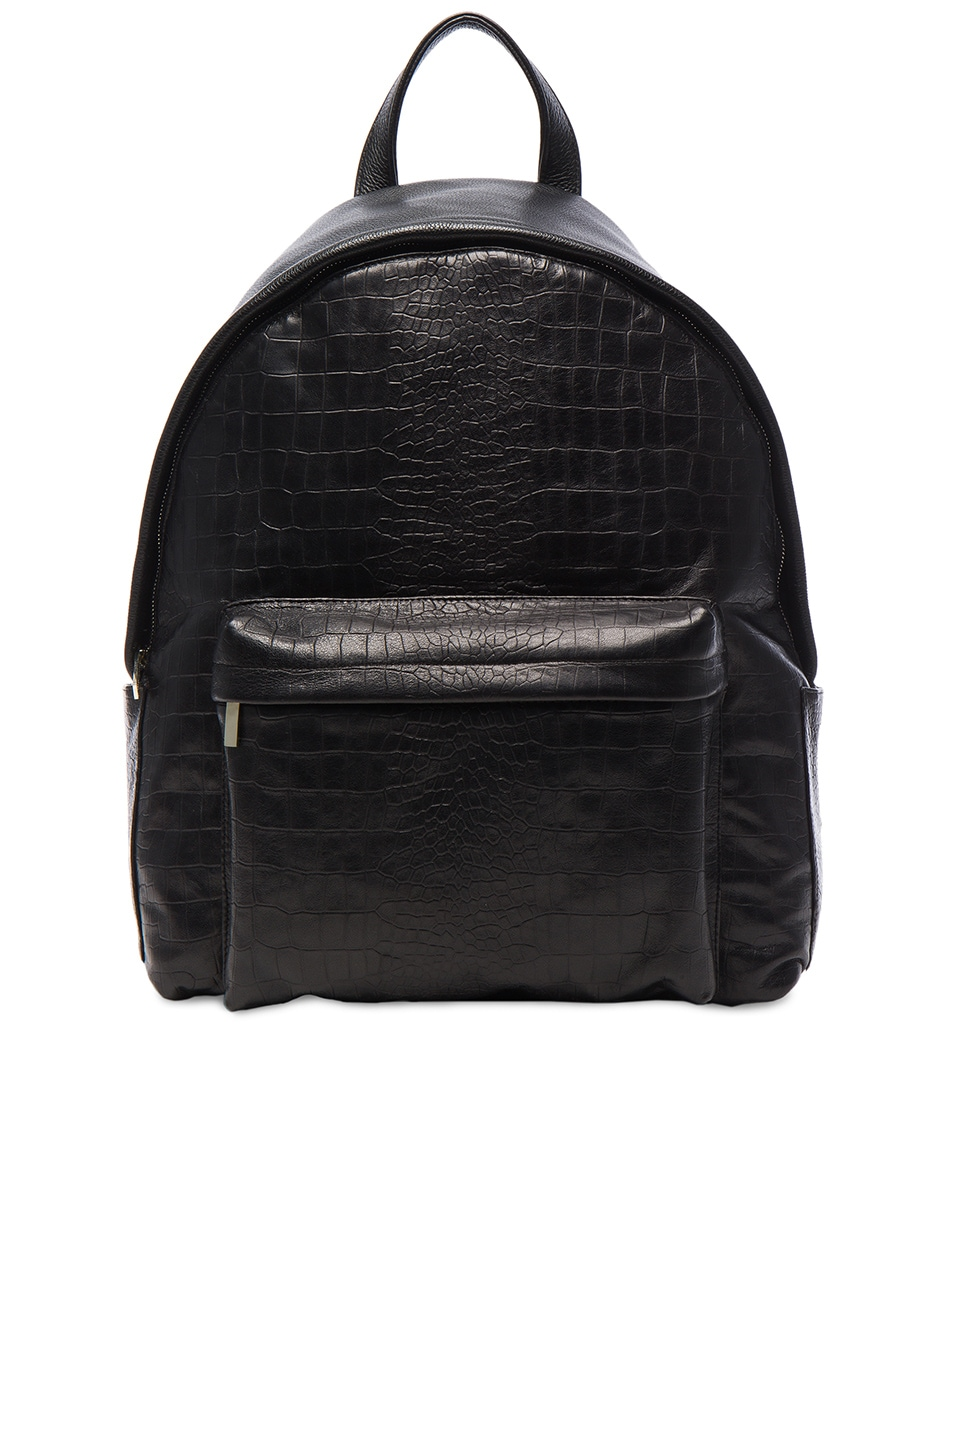 Image 1 of Elisabeth Weinstock Large Andes Backpack in Black with Red Lining